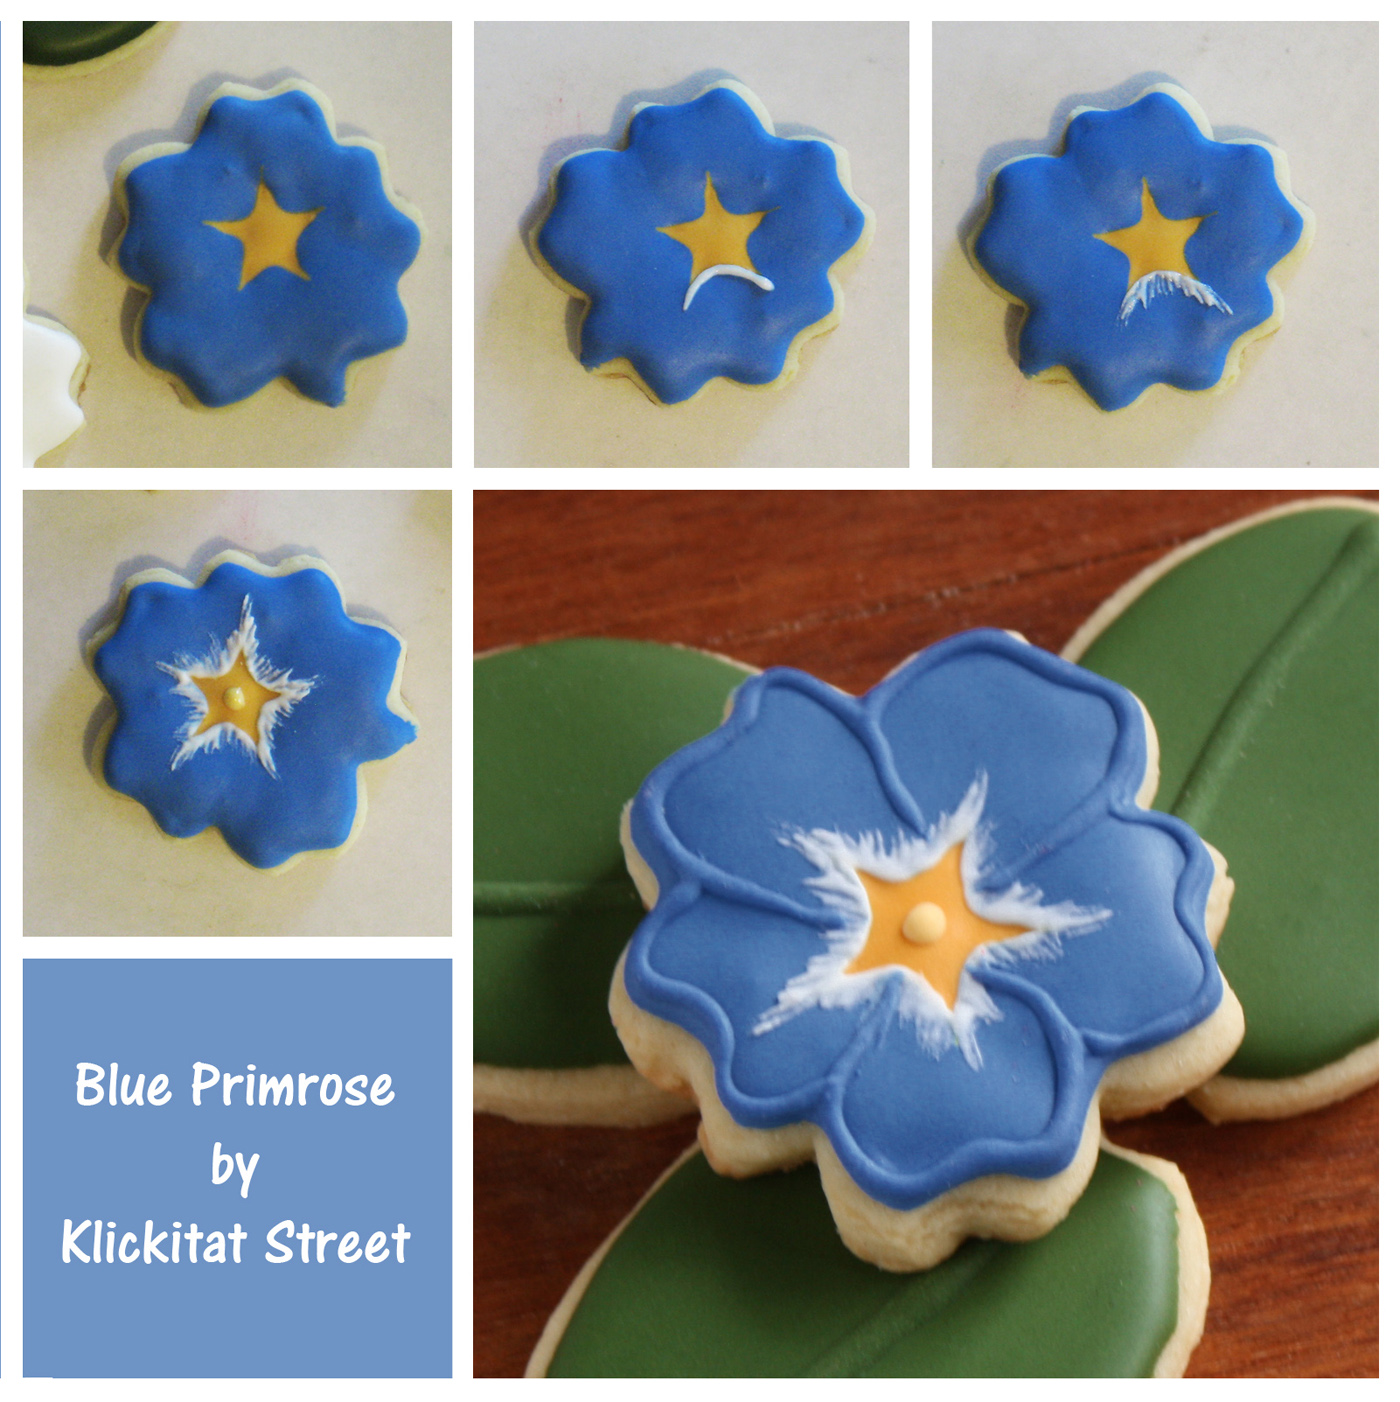 decorated sugar cookies iced to look like blue primrose flowers by Klickitat Street